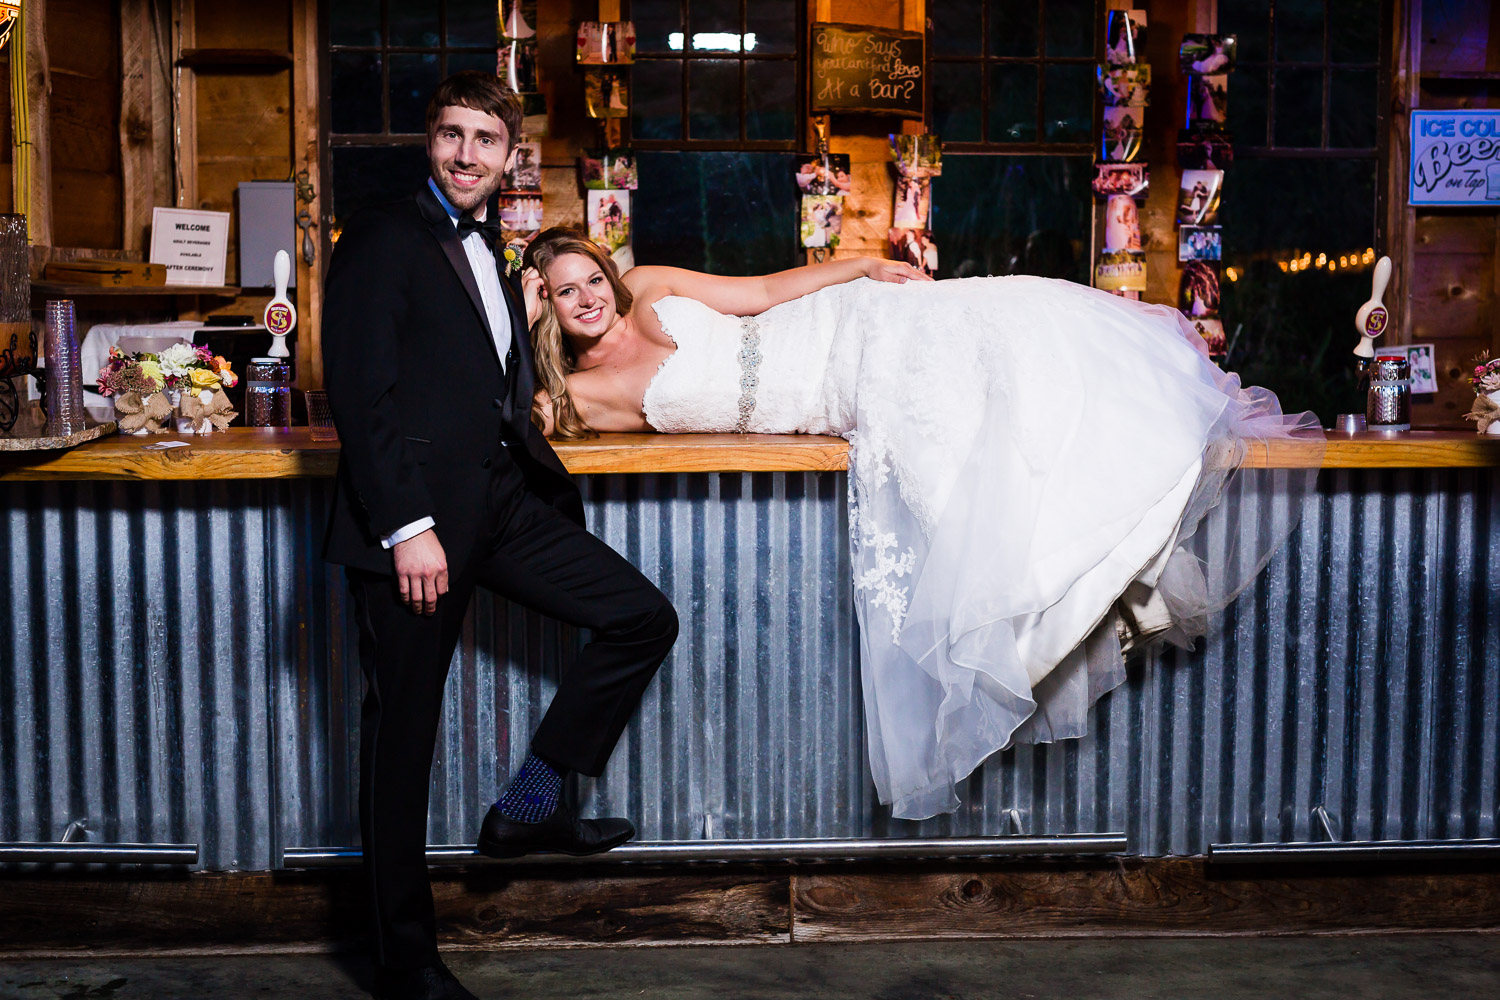 Married at the bar - Snohomish Wedding